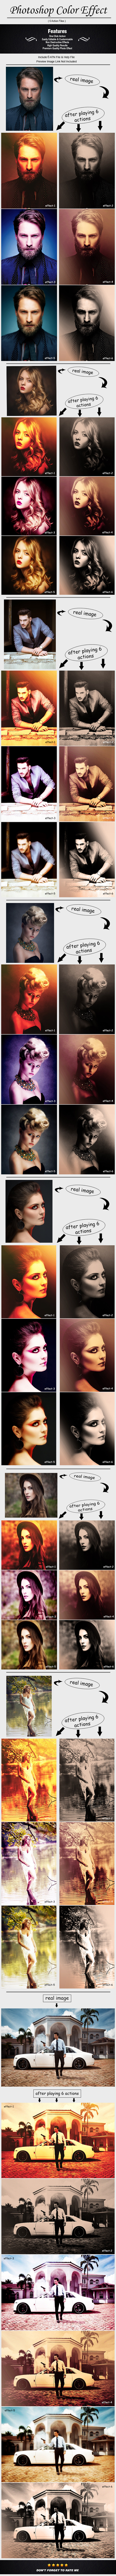 Photoshop Color Effect - Photo Effects Actions